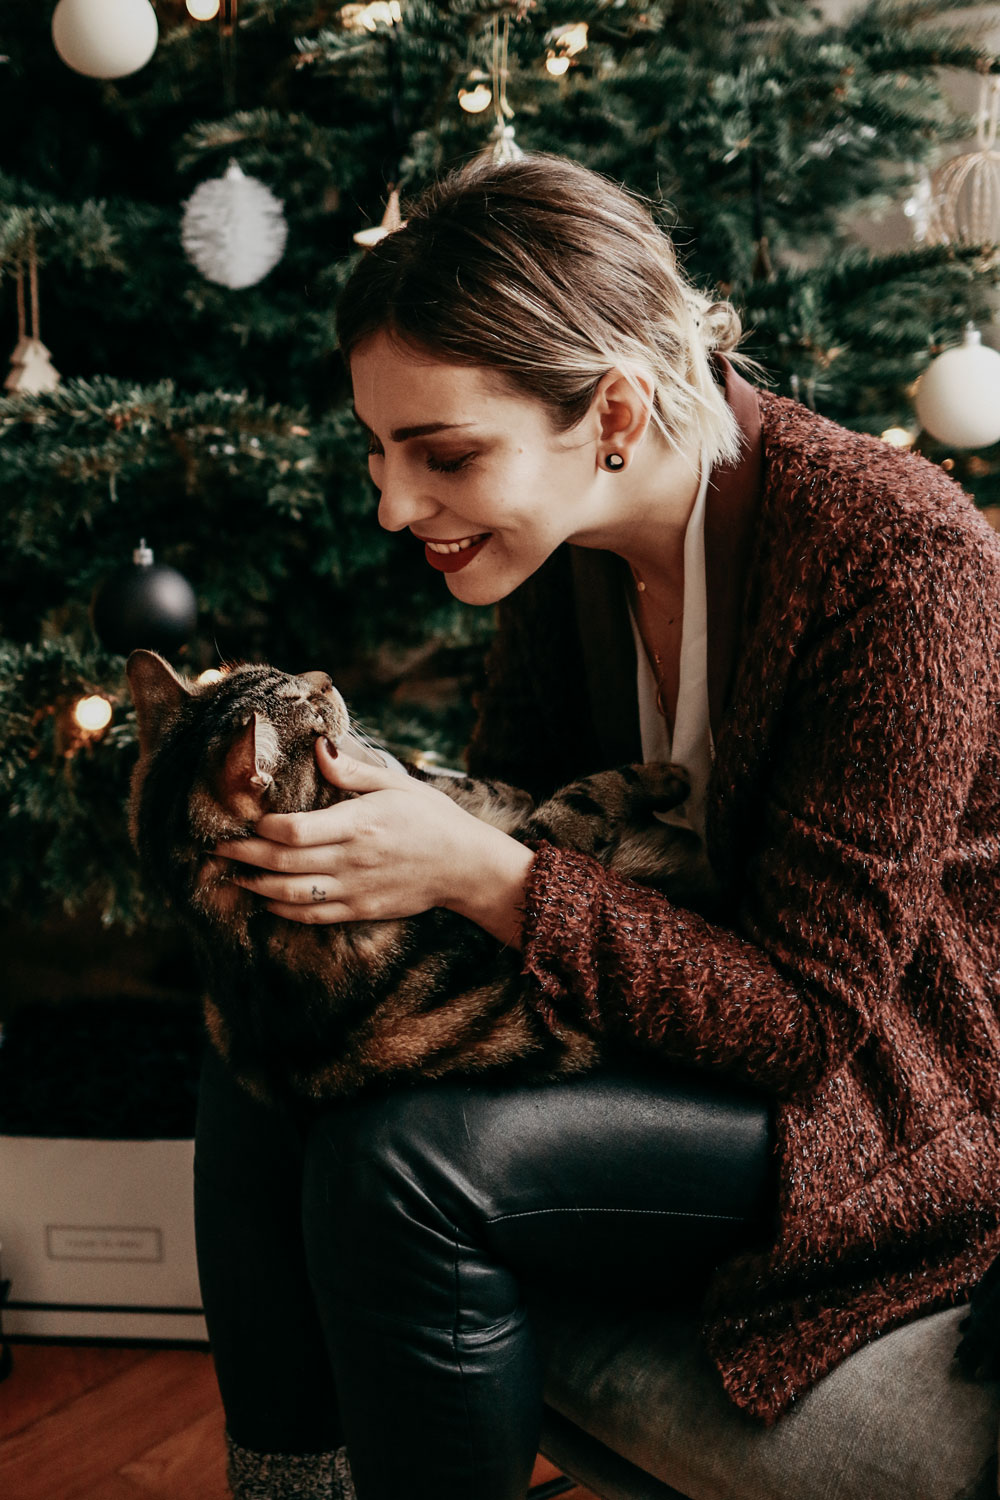 Christmas decoration: living room with cat content and Christmas tree | location: berlin